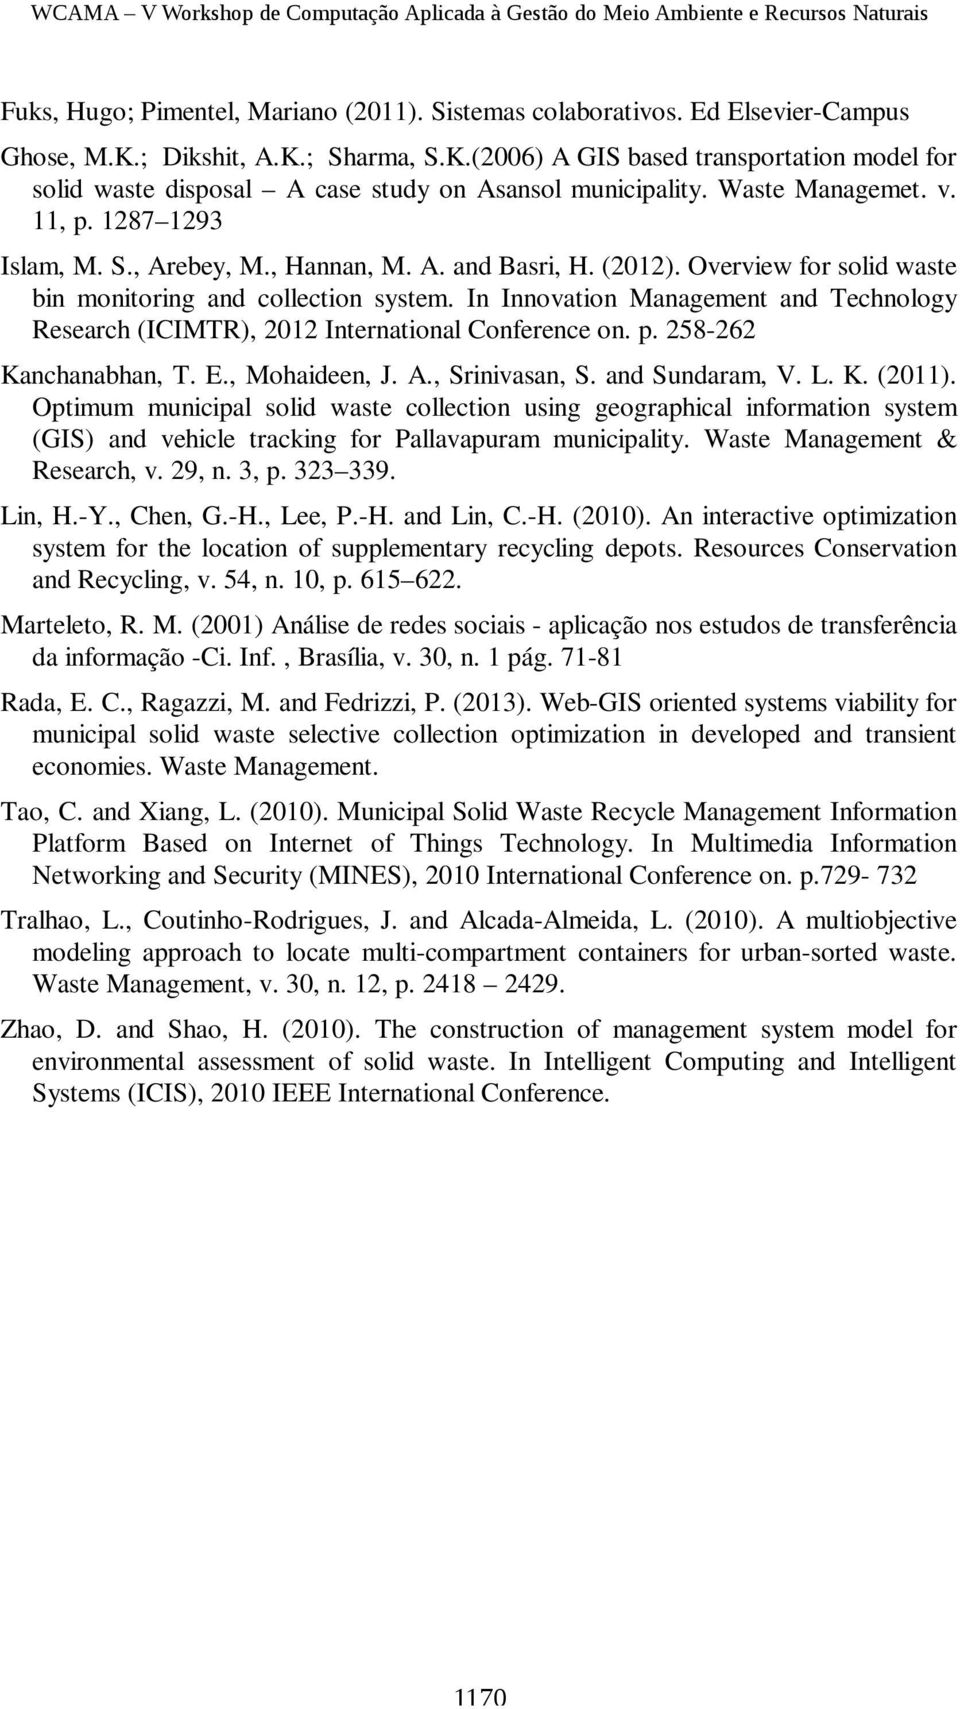 (2012). Overview for solid waste bin monitoring and collection system. In Innovation Management and Technology Research (ICIMTR), 2012 International Conference on. p. 258-262 Kanchanabhan, T. E.